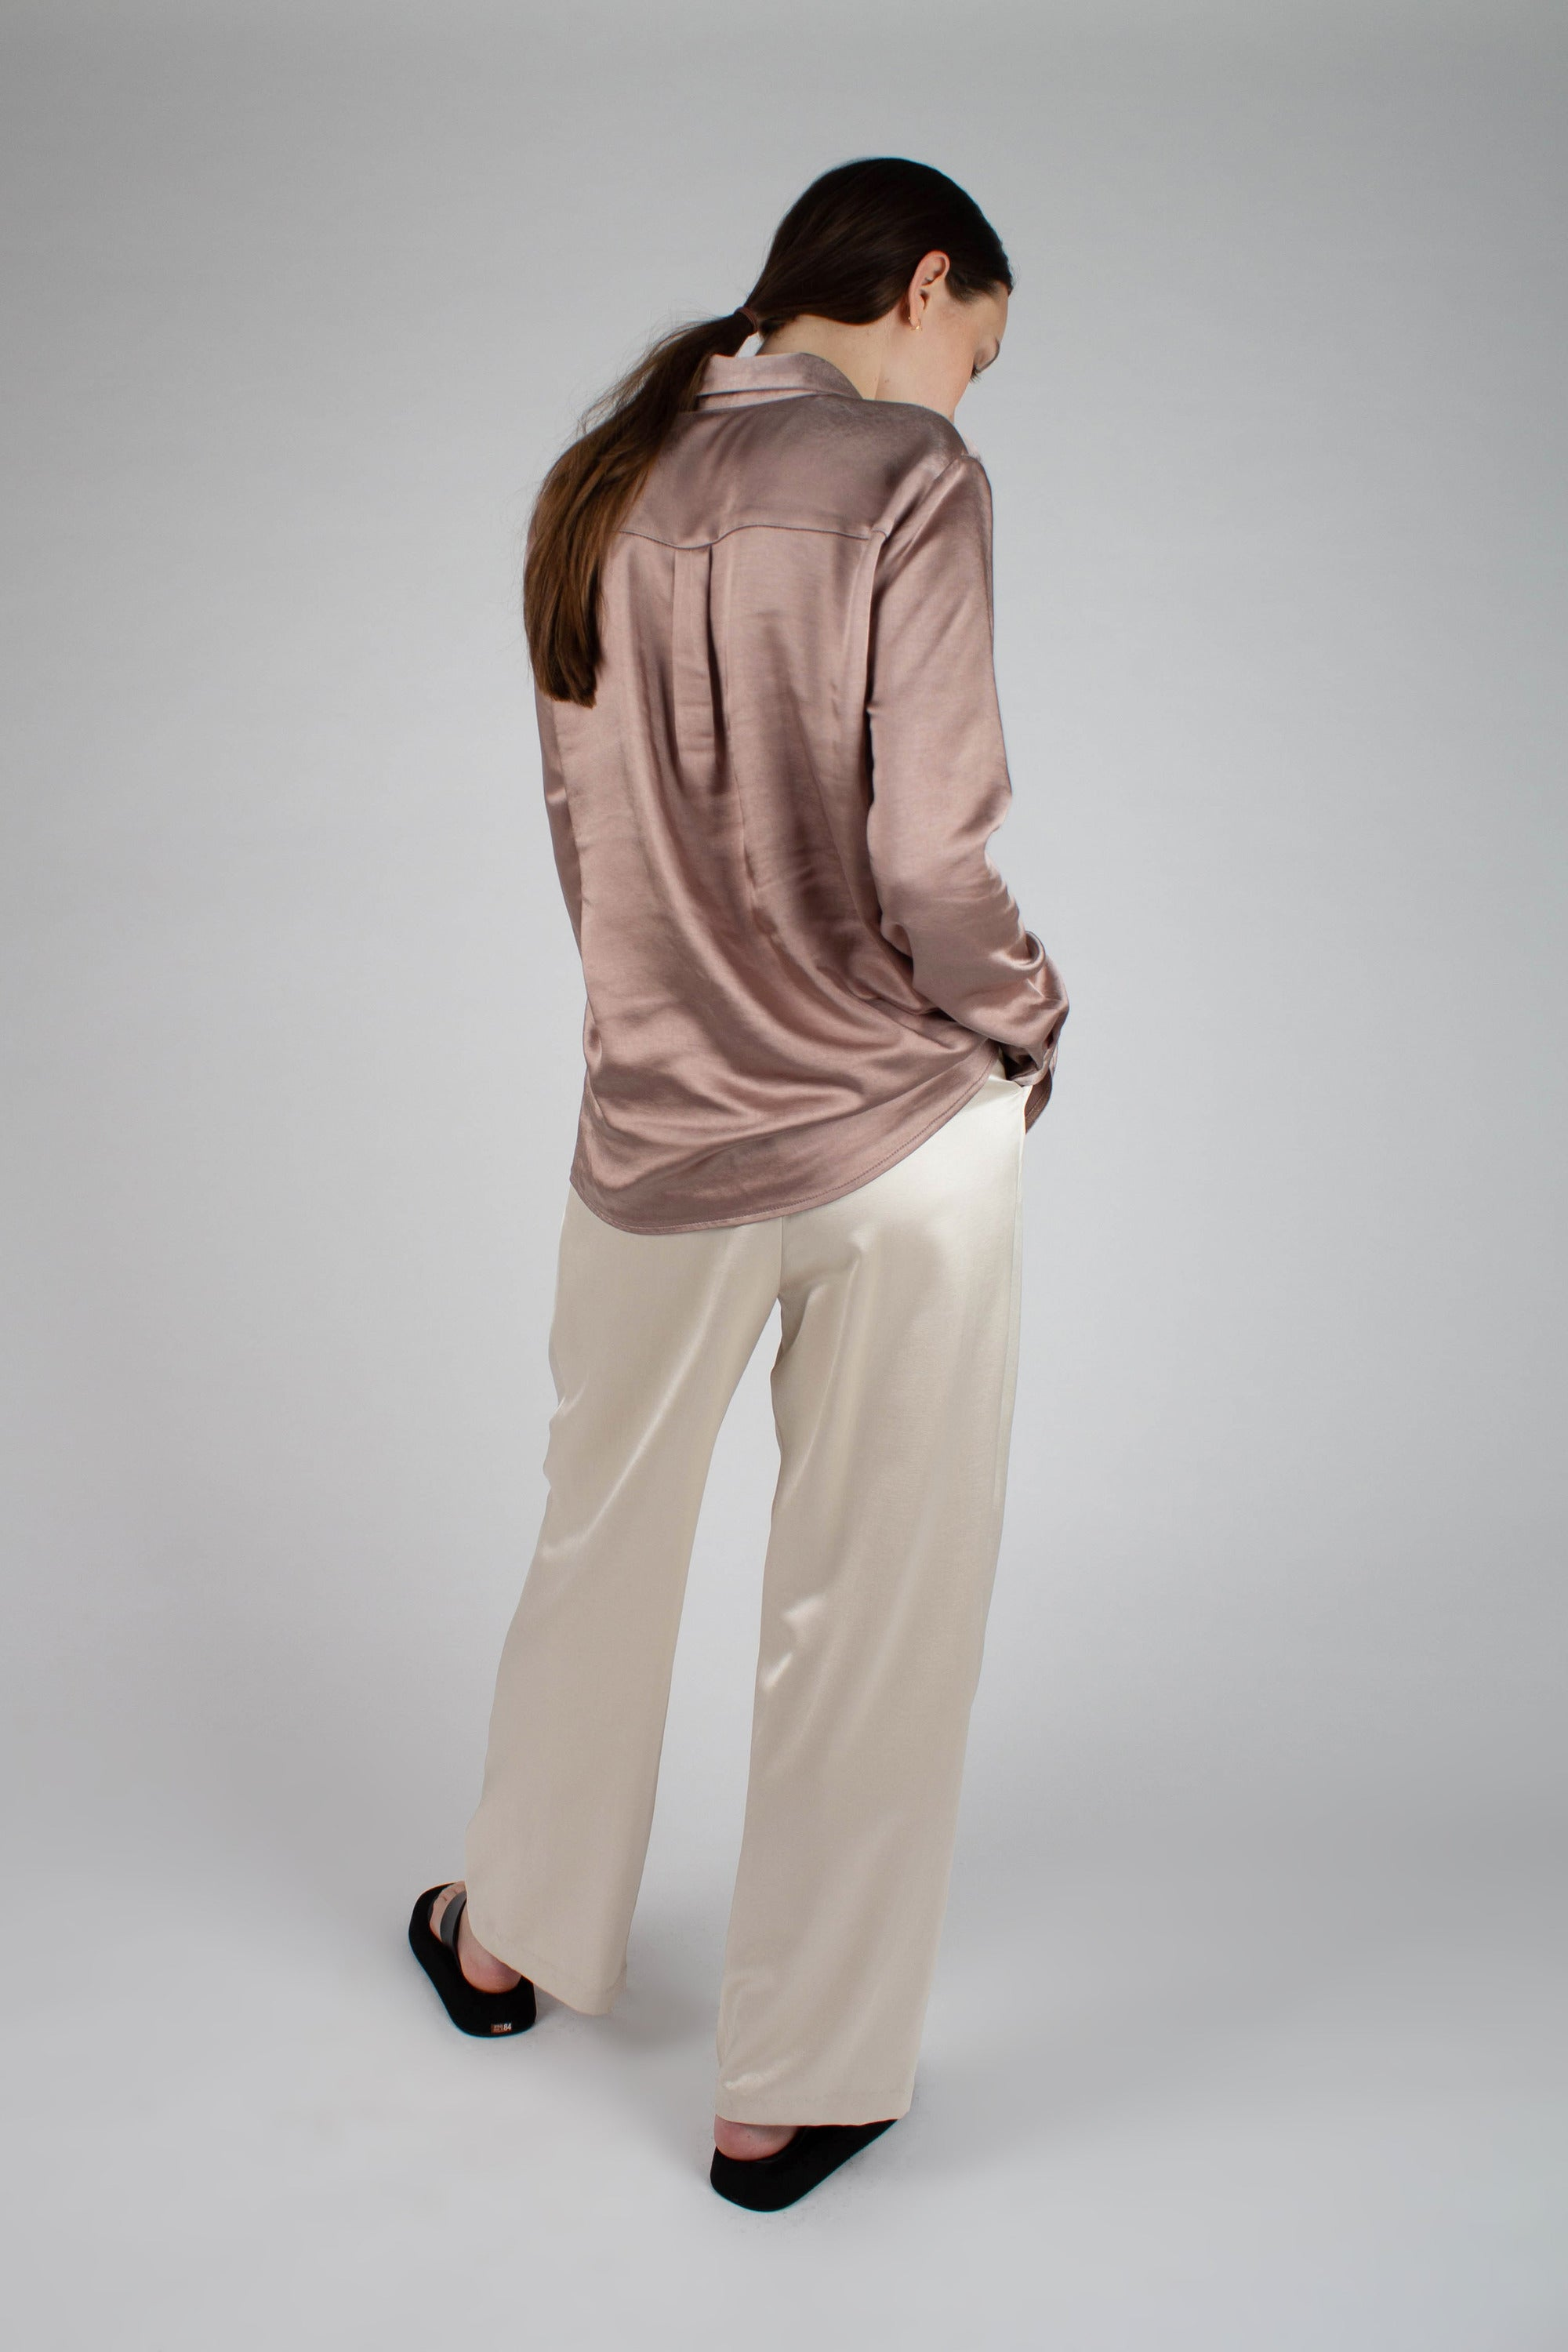 22646_Beige satin chest pocket silky shirt_MFSBA1